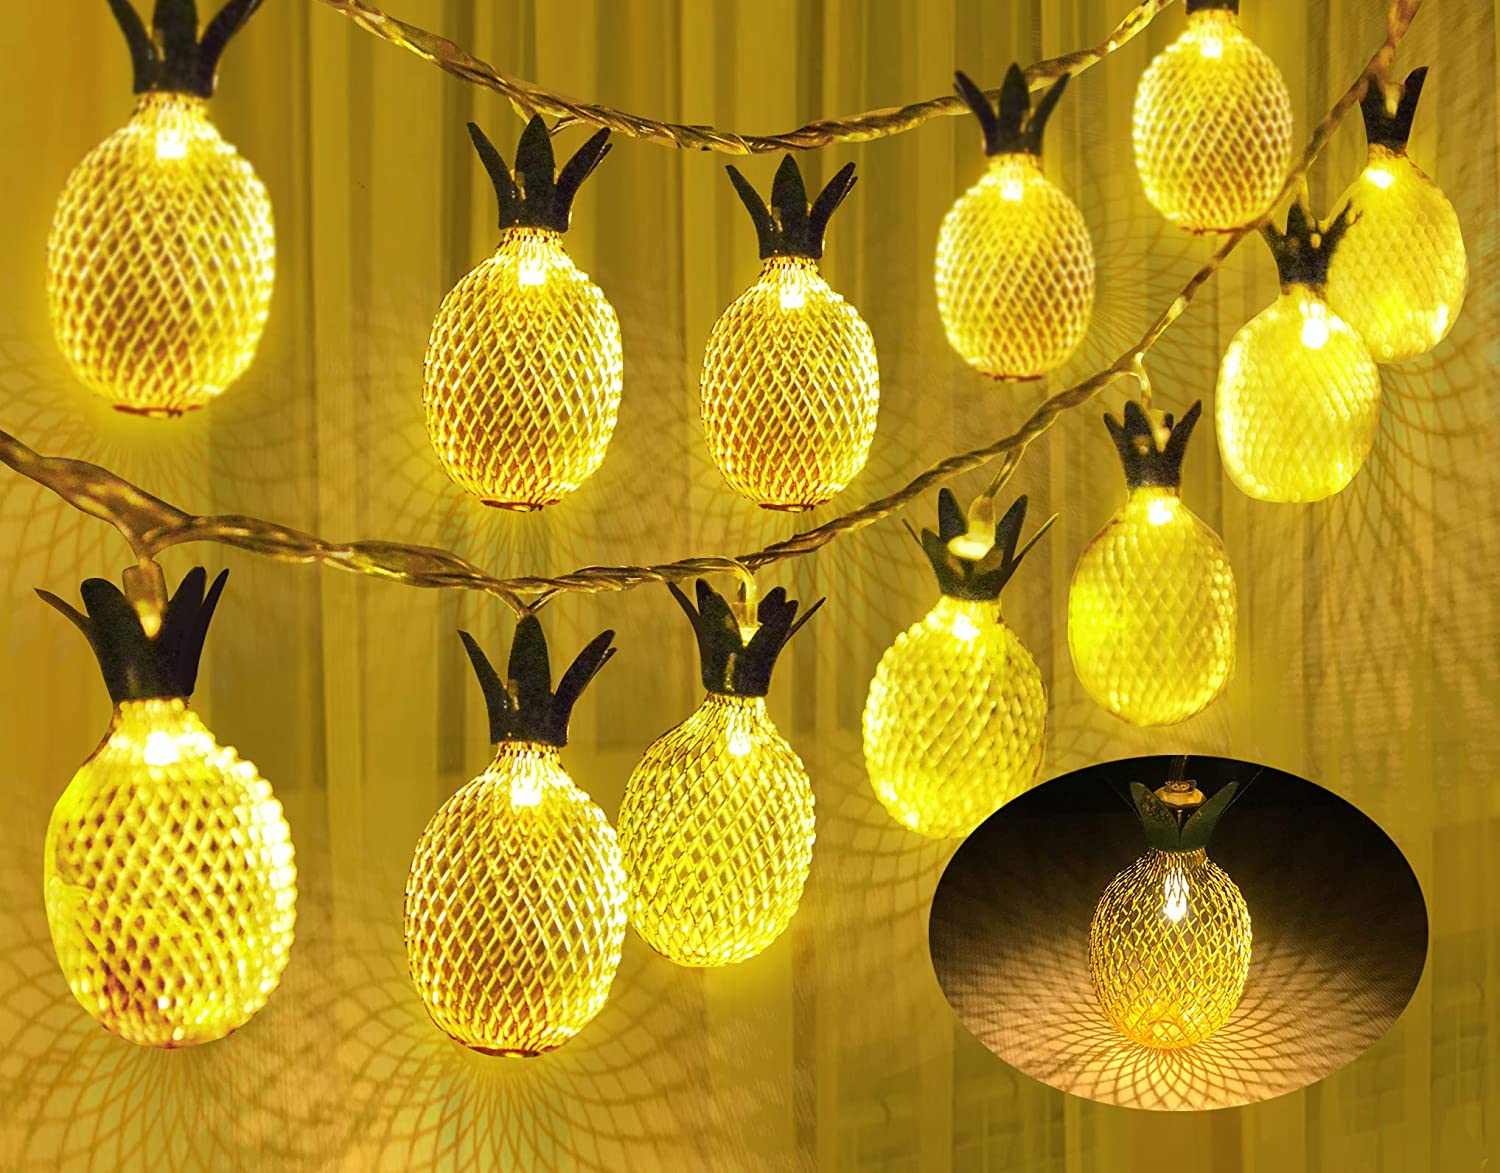 Joiedomi 2 Pineapple String Lights 10ft 10 LED (Warm White) Fairy Lights Battery Operated for Christmas Home Party Wedding Bedroom Indoor Decor